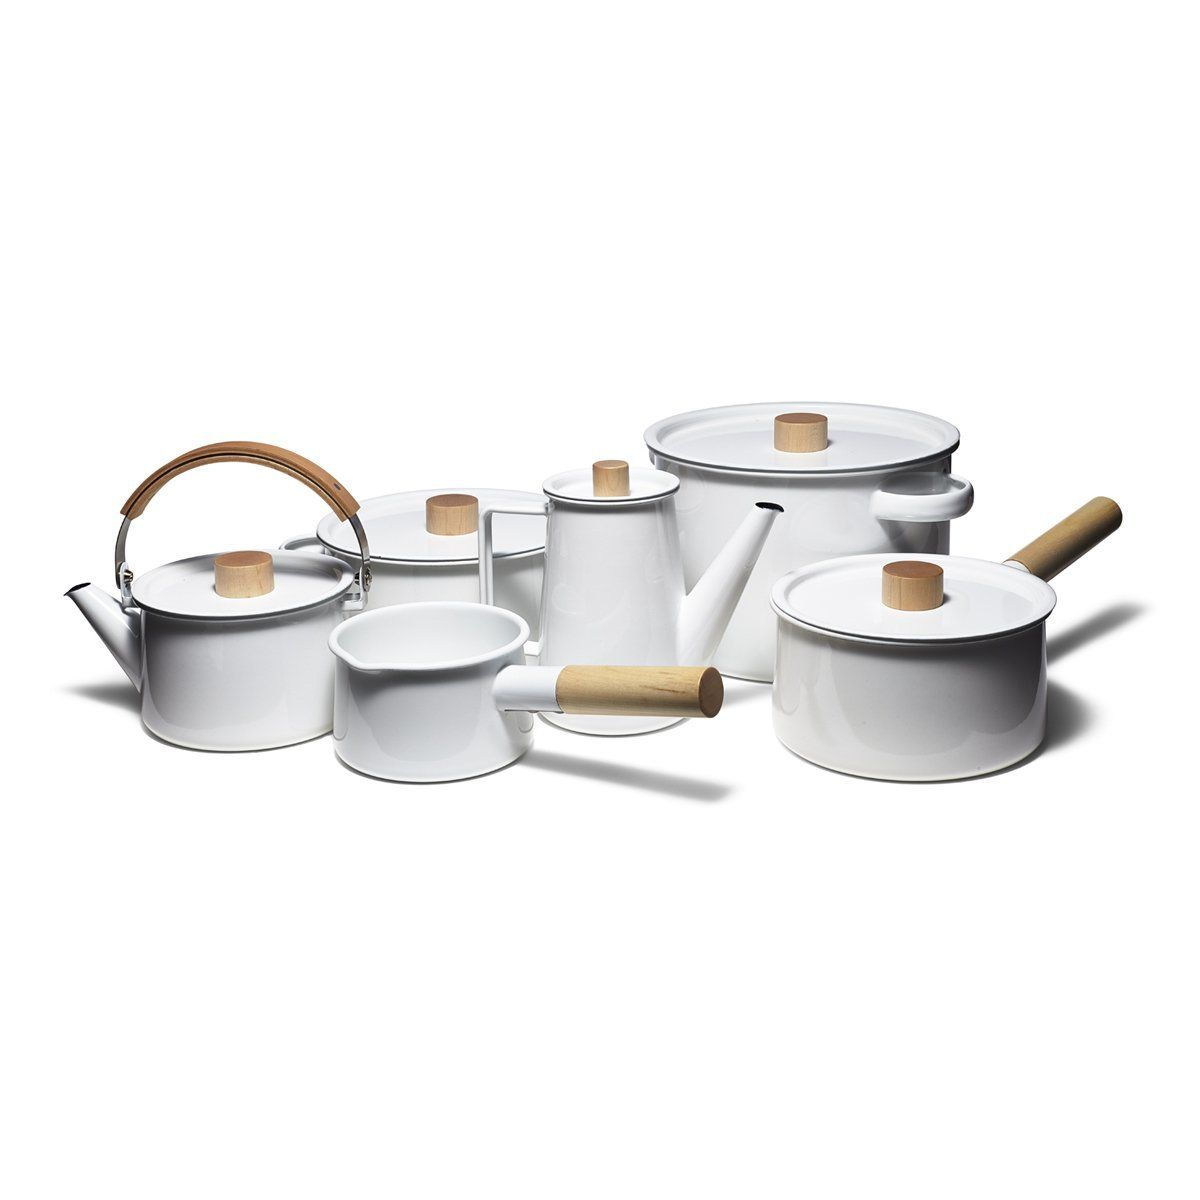 Good Amazon.com: Kaico Enamel Pasta Pan Set: Kitchen U0026 Dining